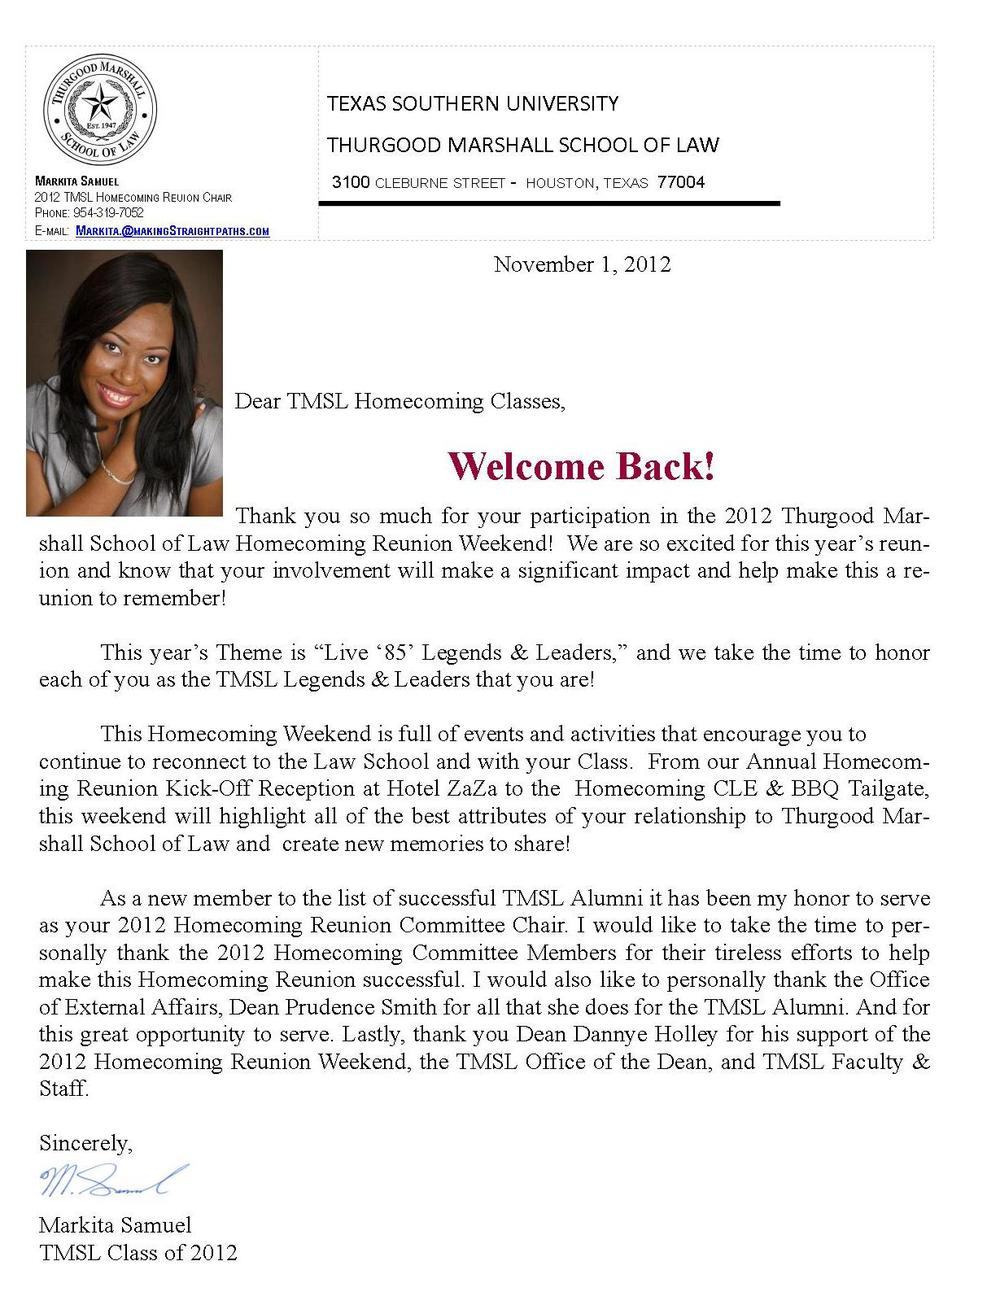 My heartfelt welcome letter to the 2012 Homecoming Reunion Weekend Classes of Thurgood Marshall School of Law! Welcome Back!